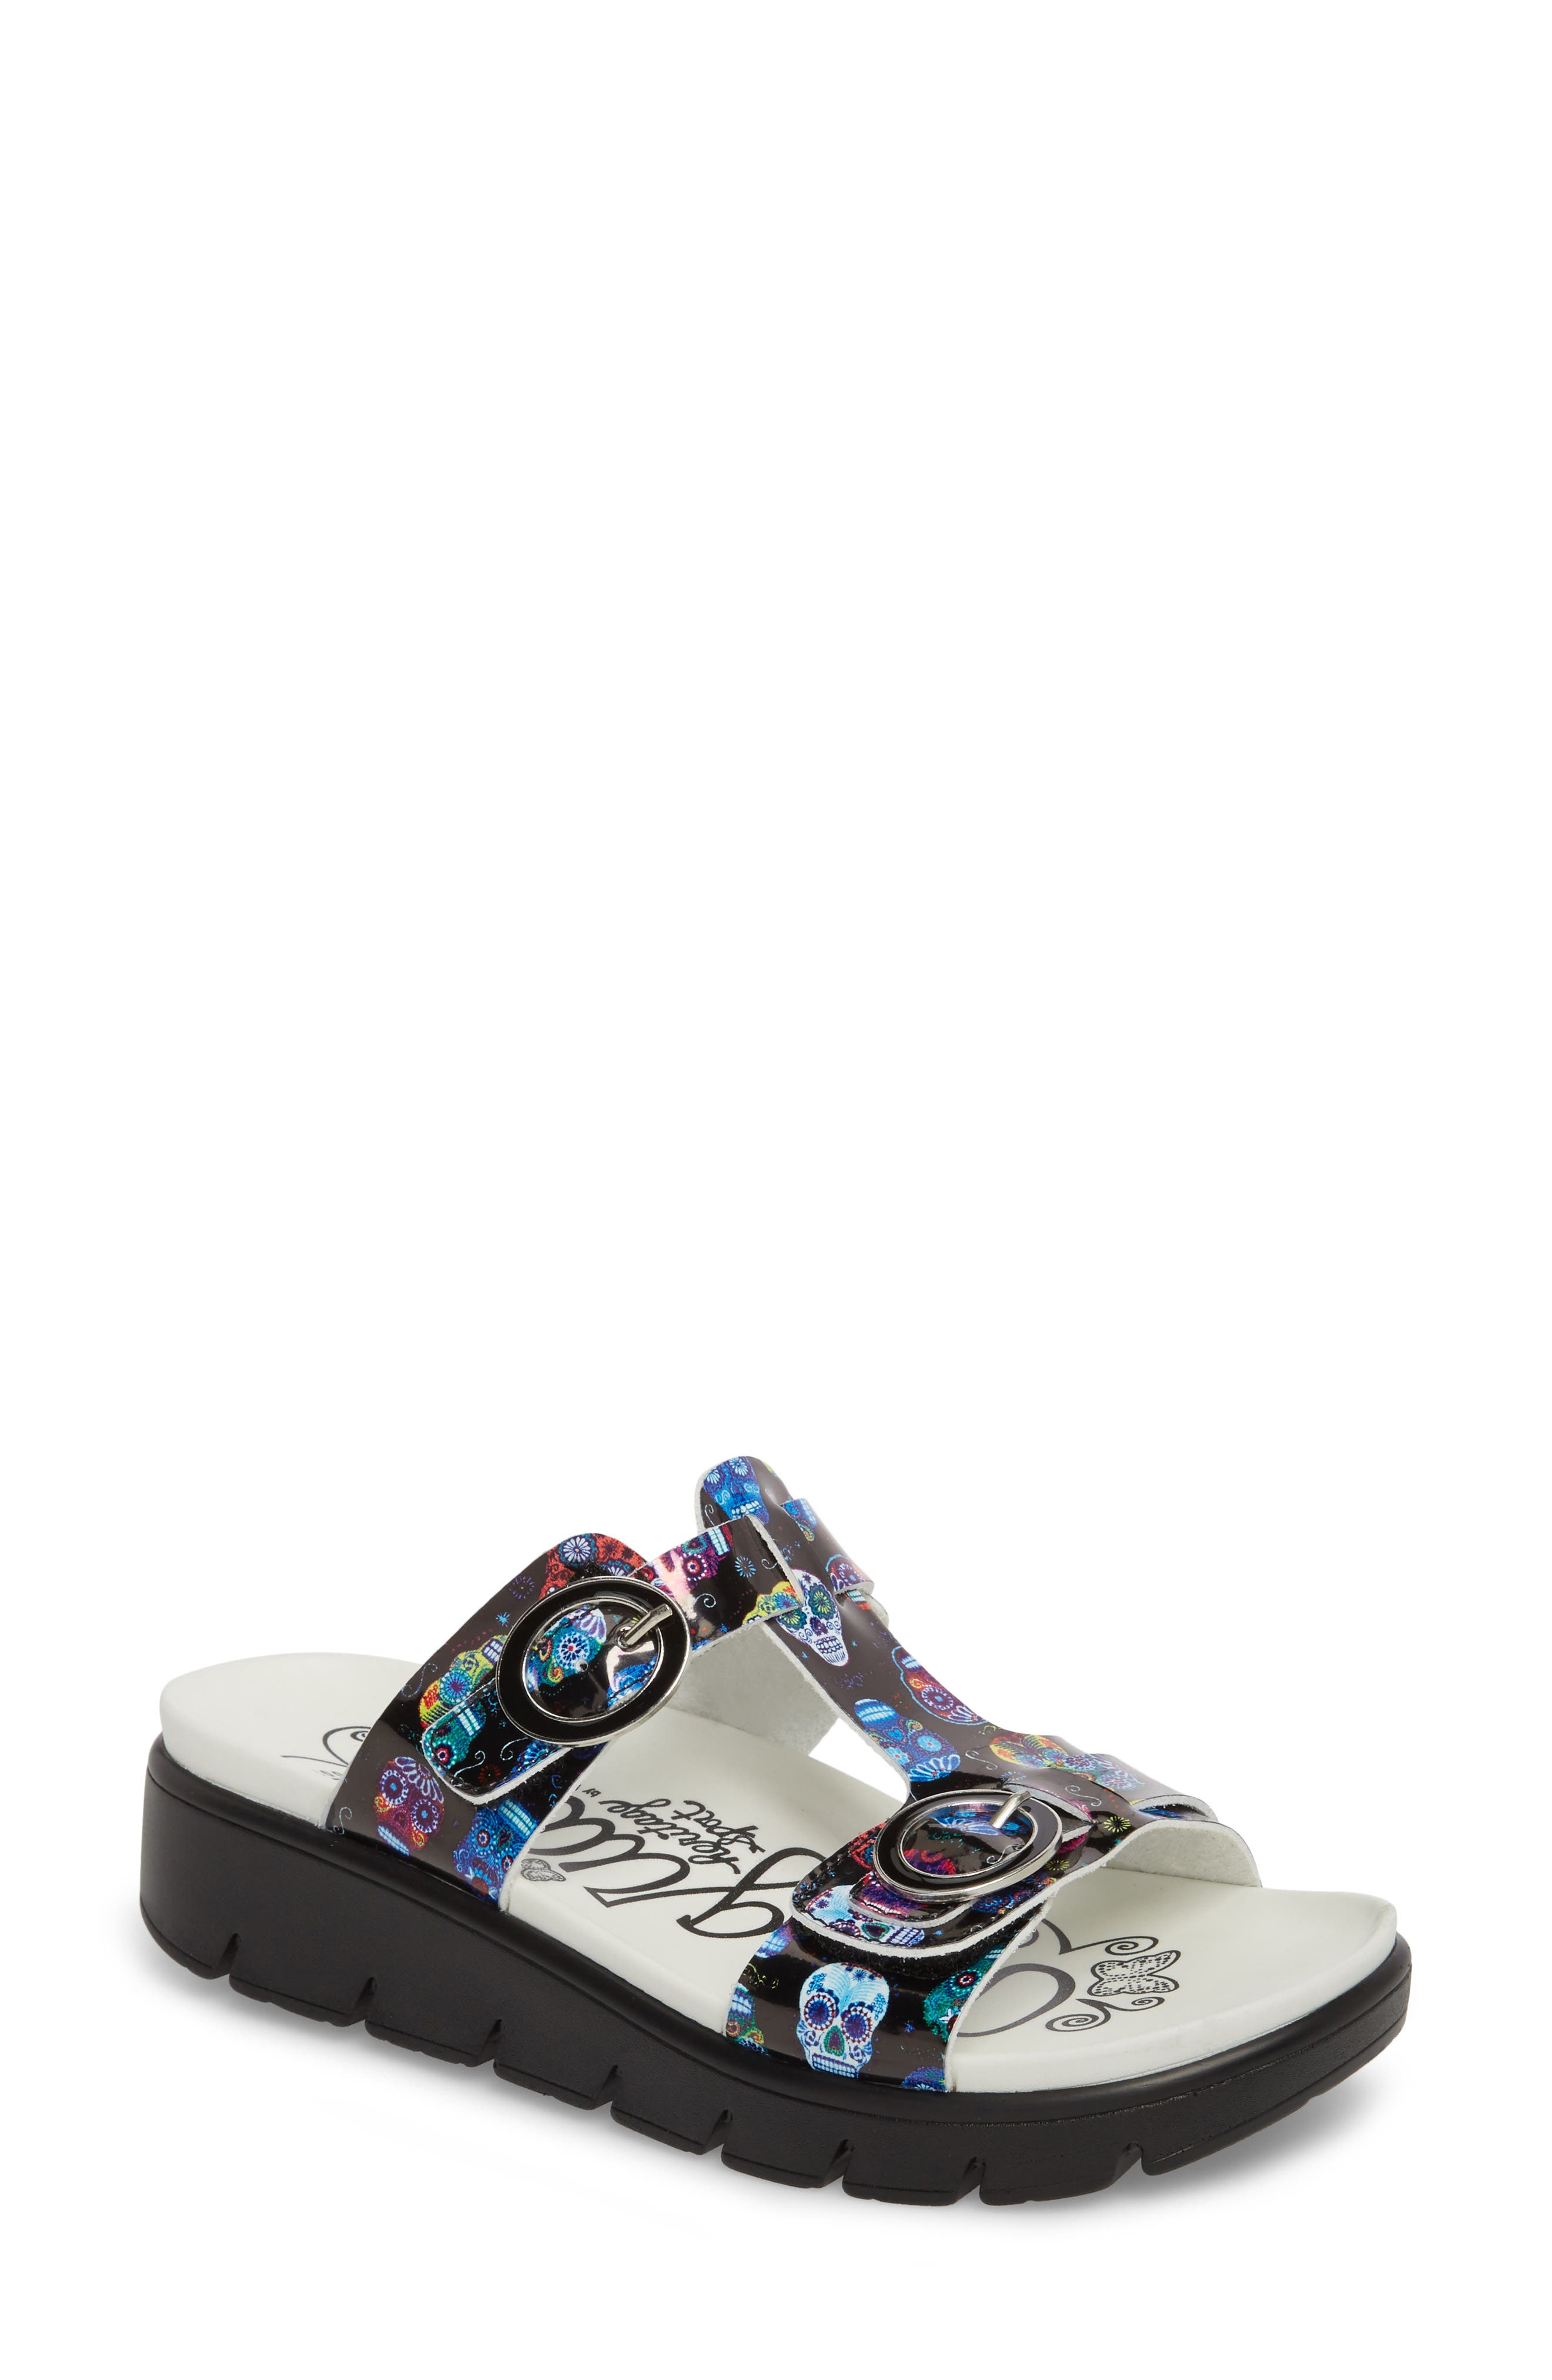 Vita Sandal,                         Main,                         color, SUGAR SKULLS LEATHER